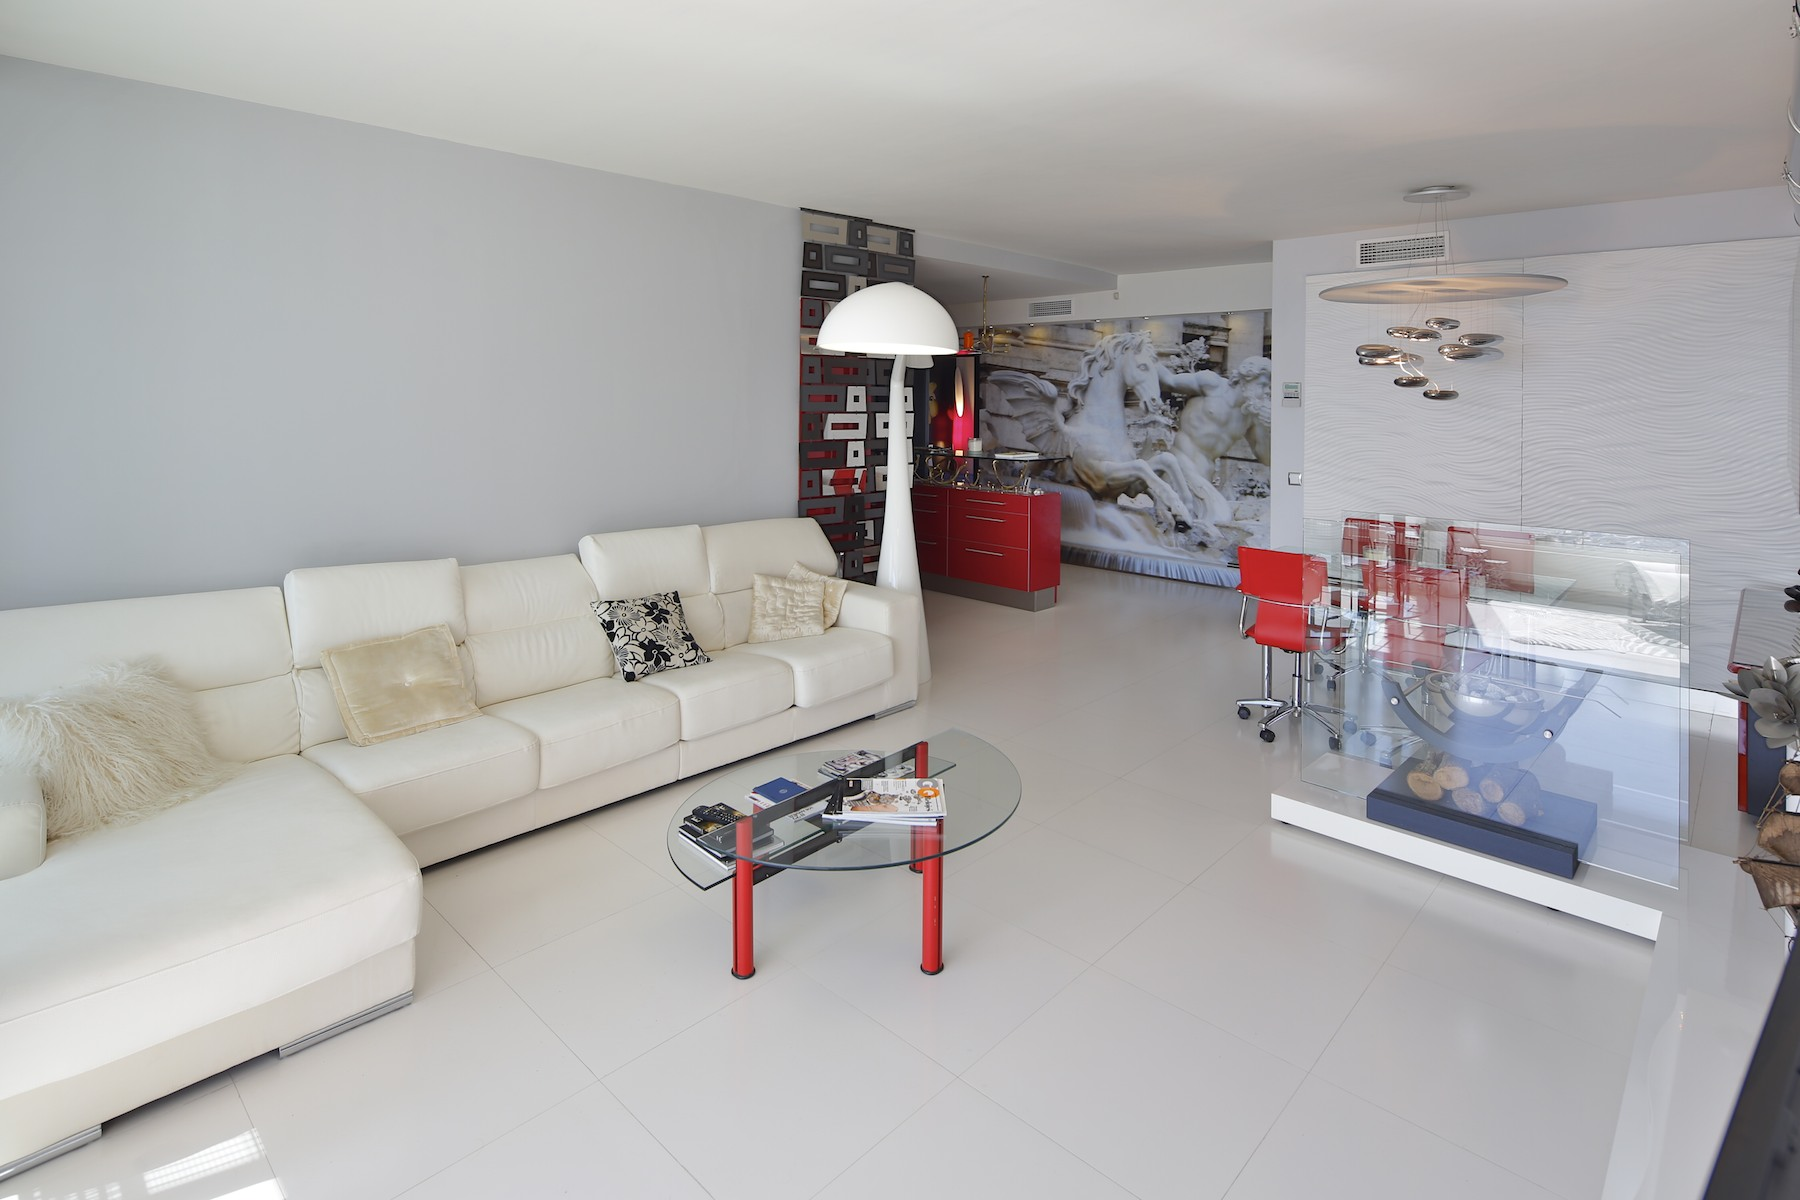 Penthouse for Sale and Rent in Puerto, Marbella - Puerto Banus